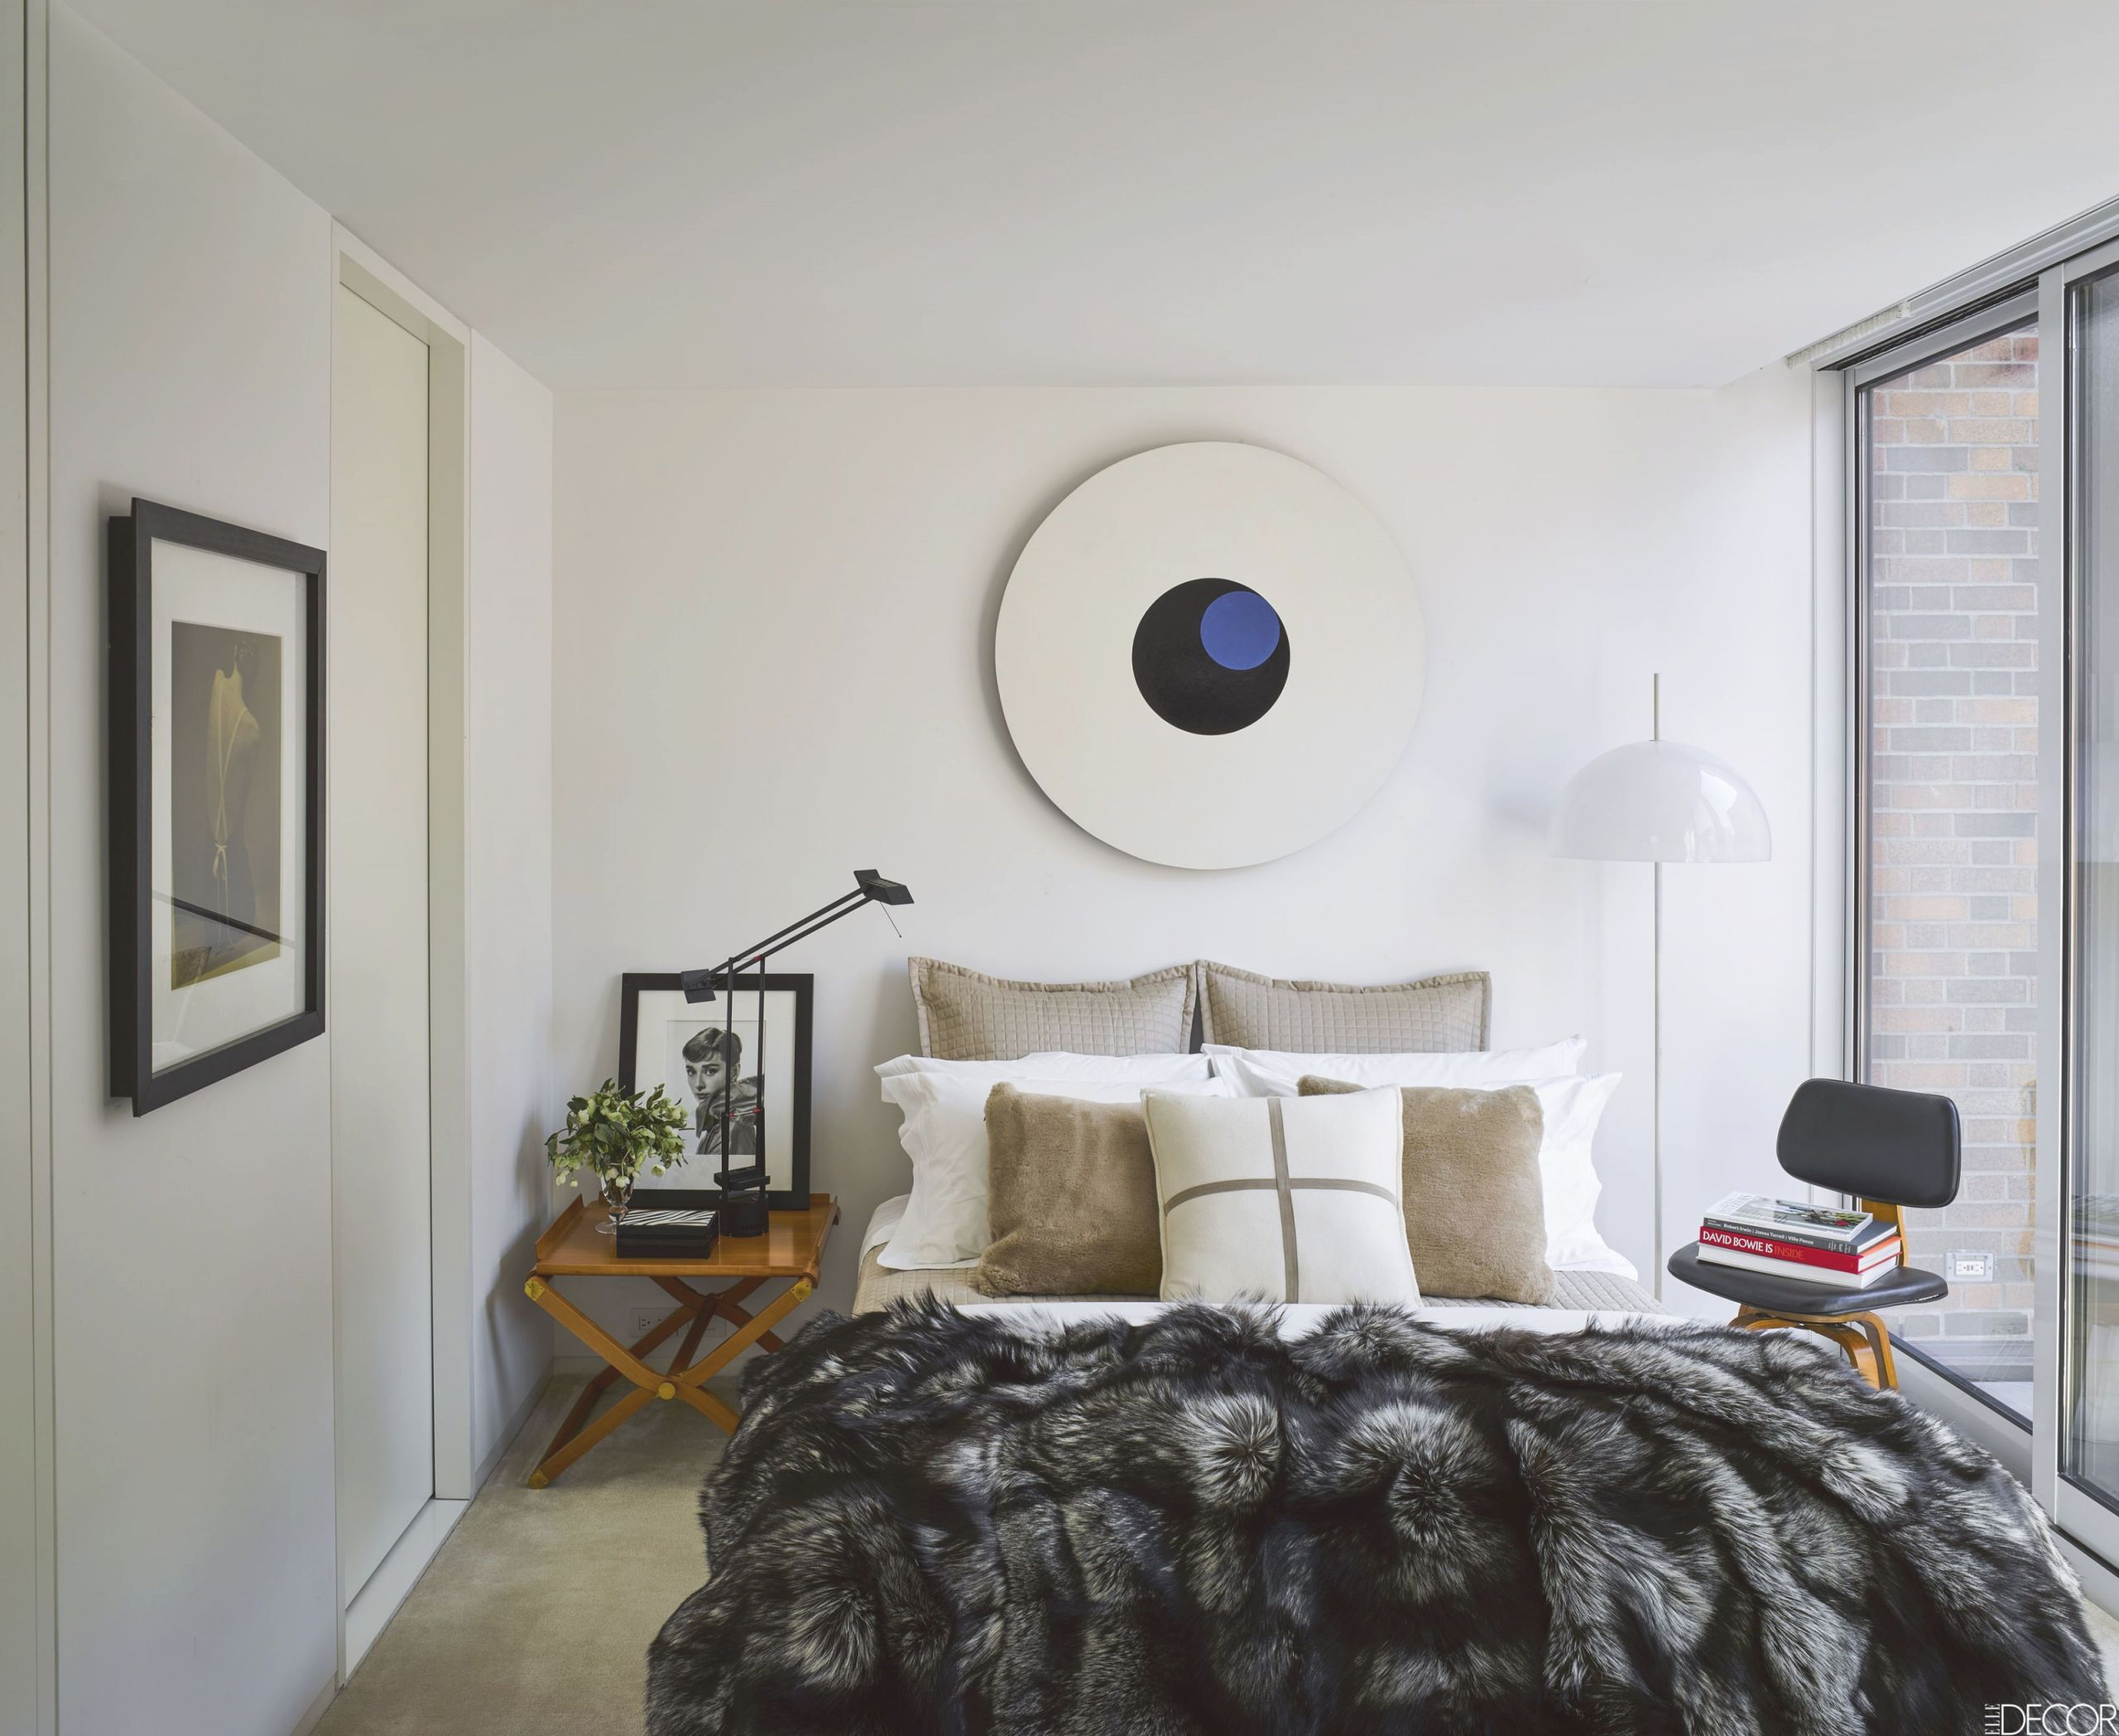 55 Small Bedroom Design Ideas – Decorating Tips For Small intended for Decorating Ideas For Small Bedroom